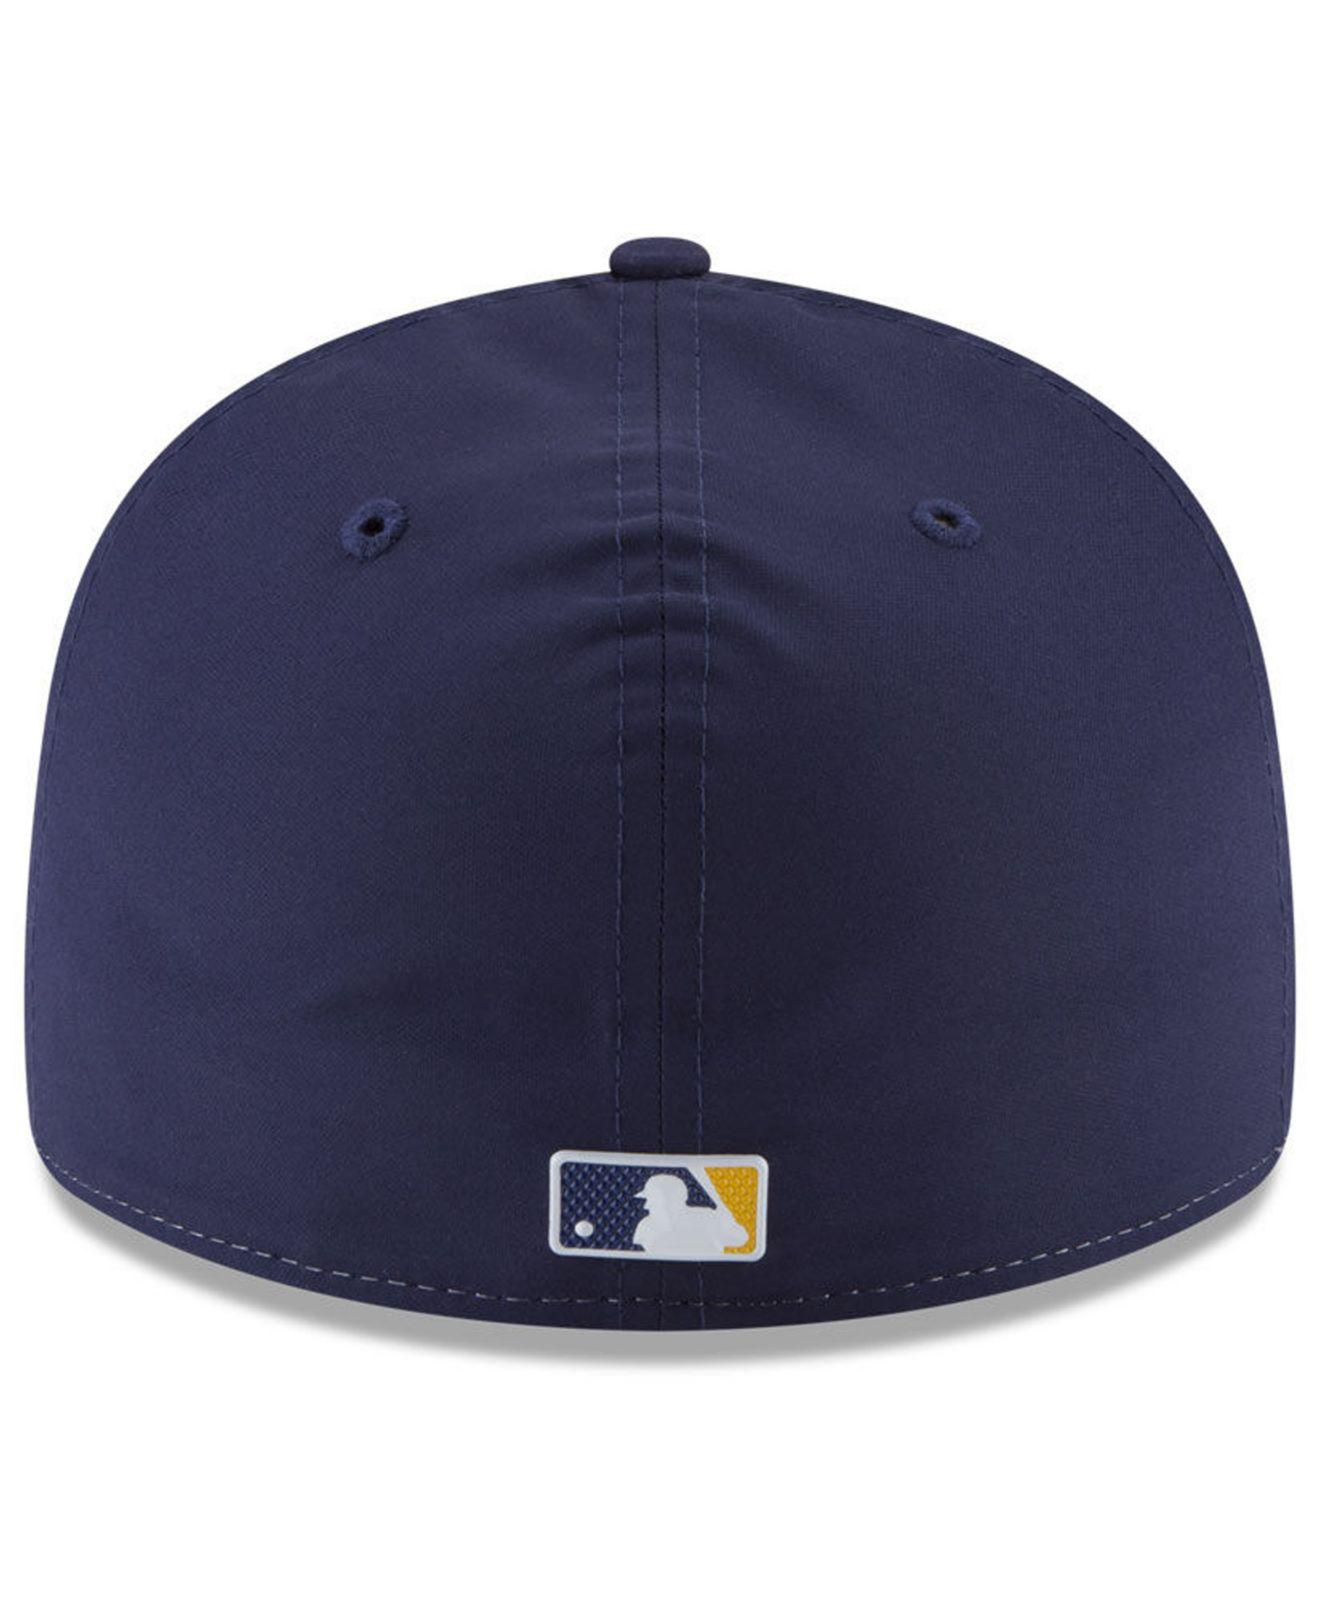 021cd99be30ee1 KTZ Milwaukee Brewers Spring Training Pro Light Low Profile 59fifty ...